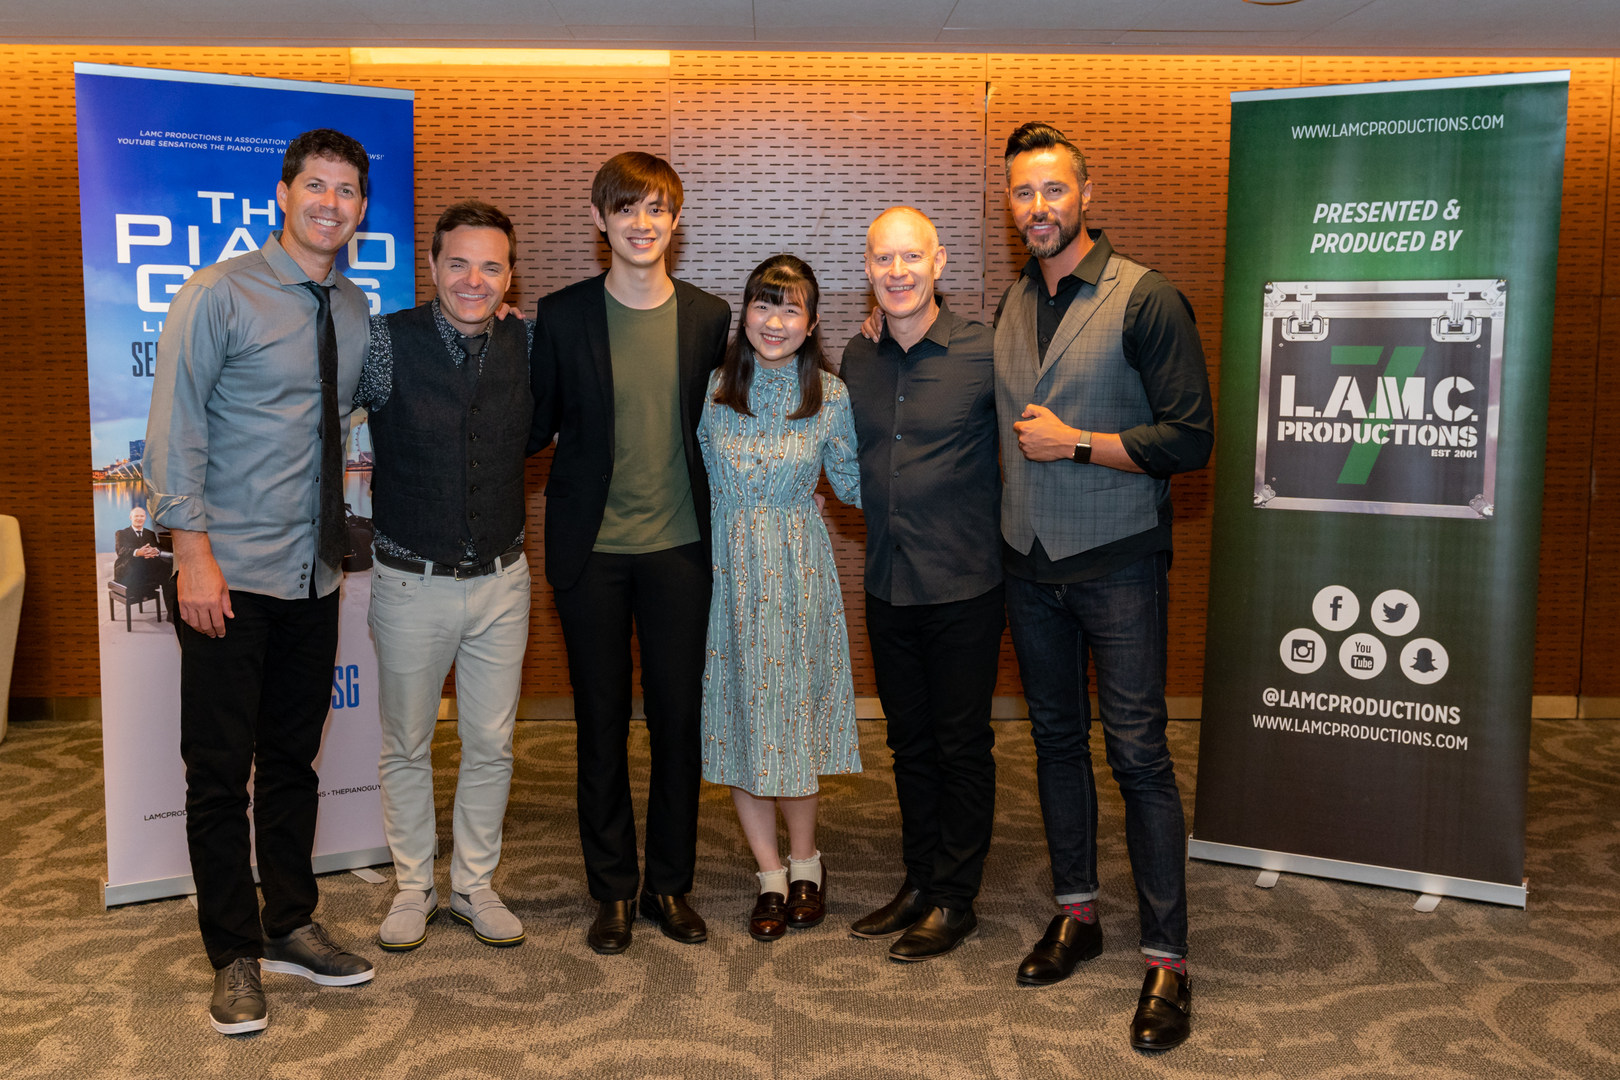 18/09/25 - The Piano Guys Meet & Greet!